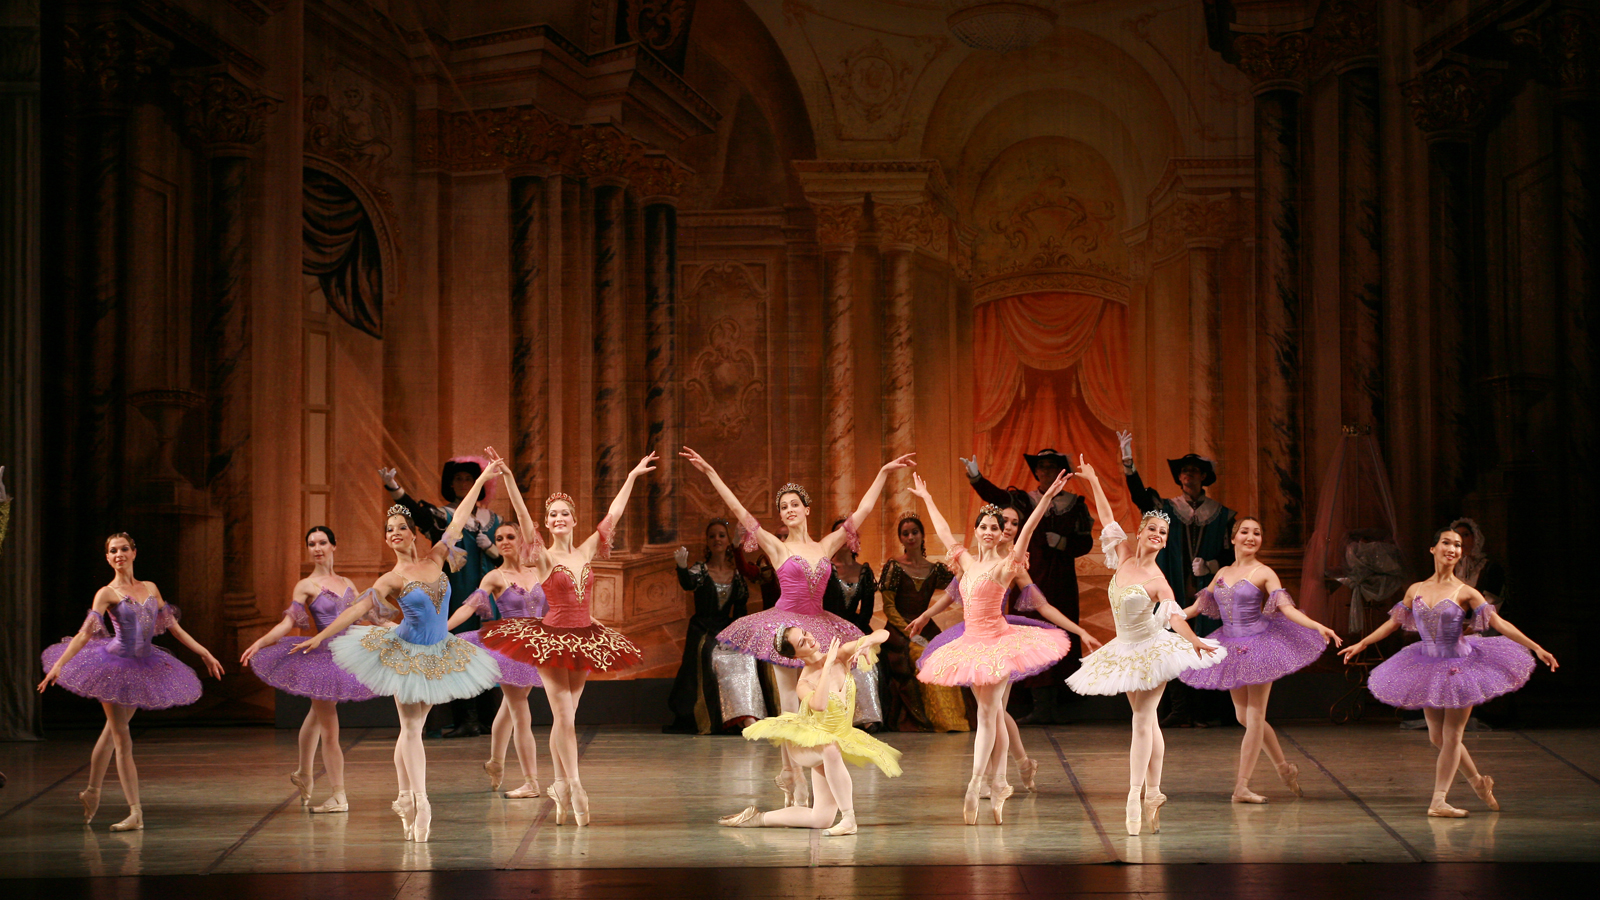 Russian National Ballet, Sleeping Beauty